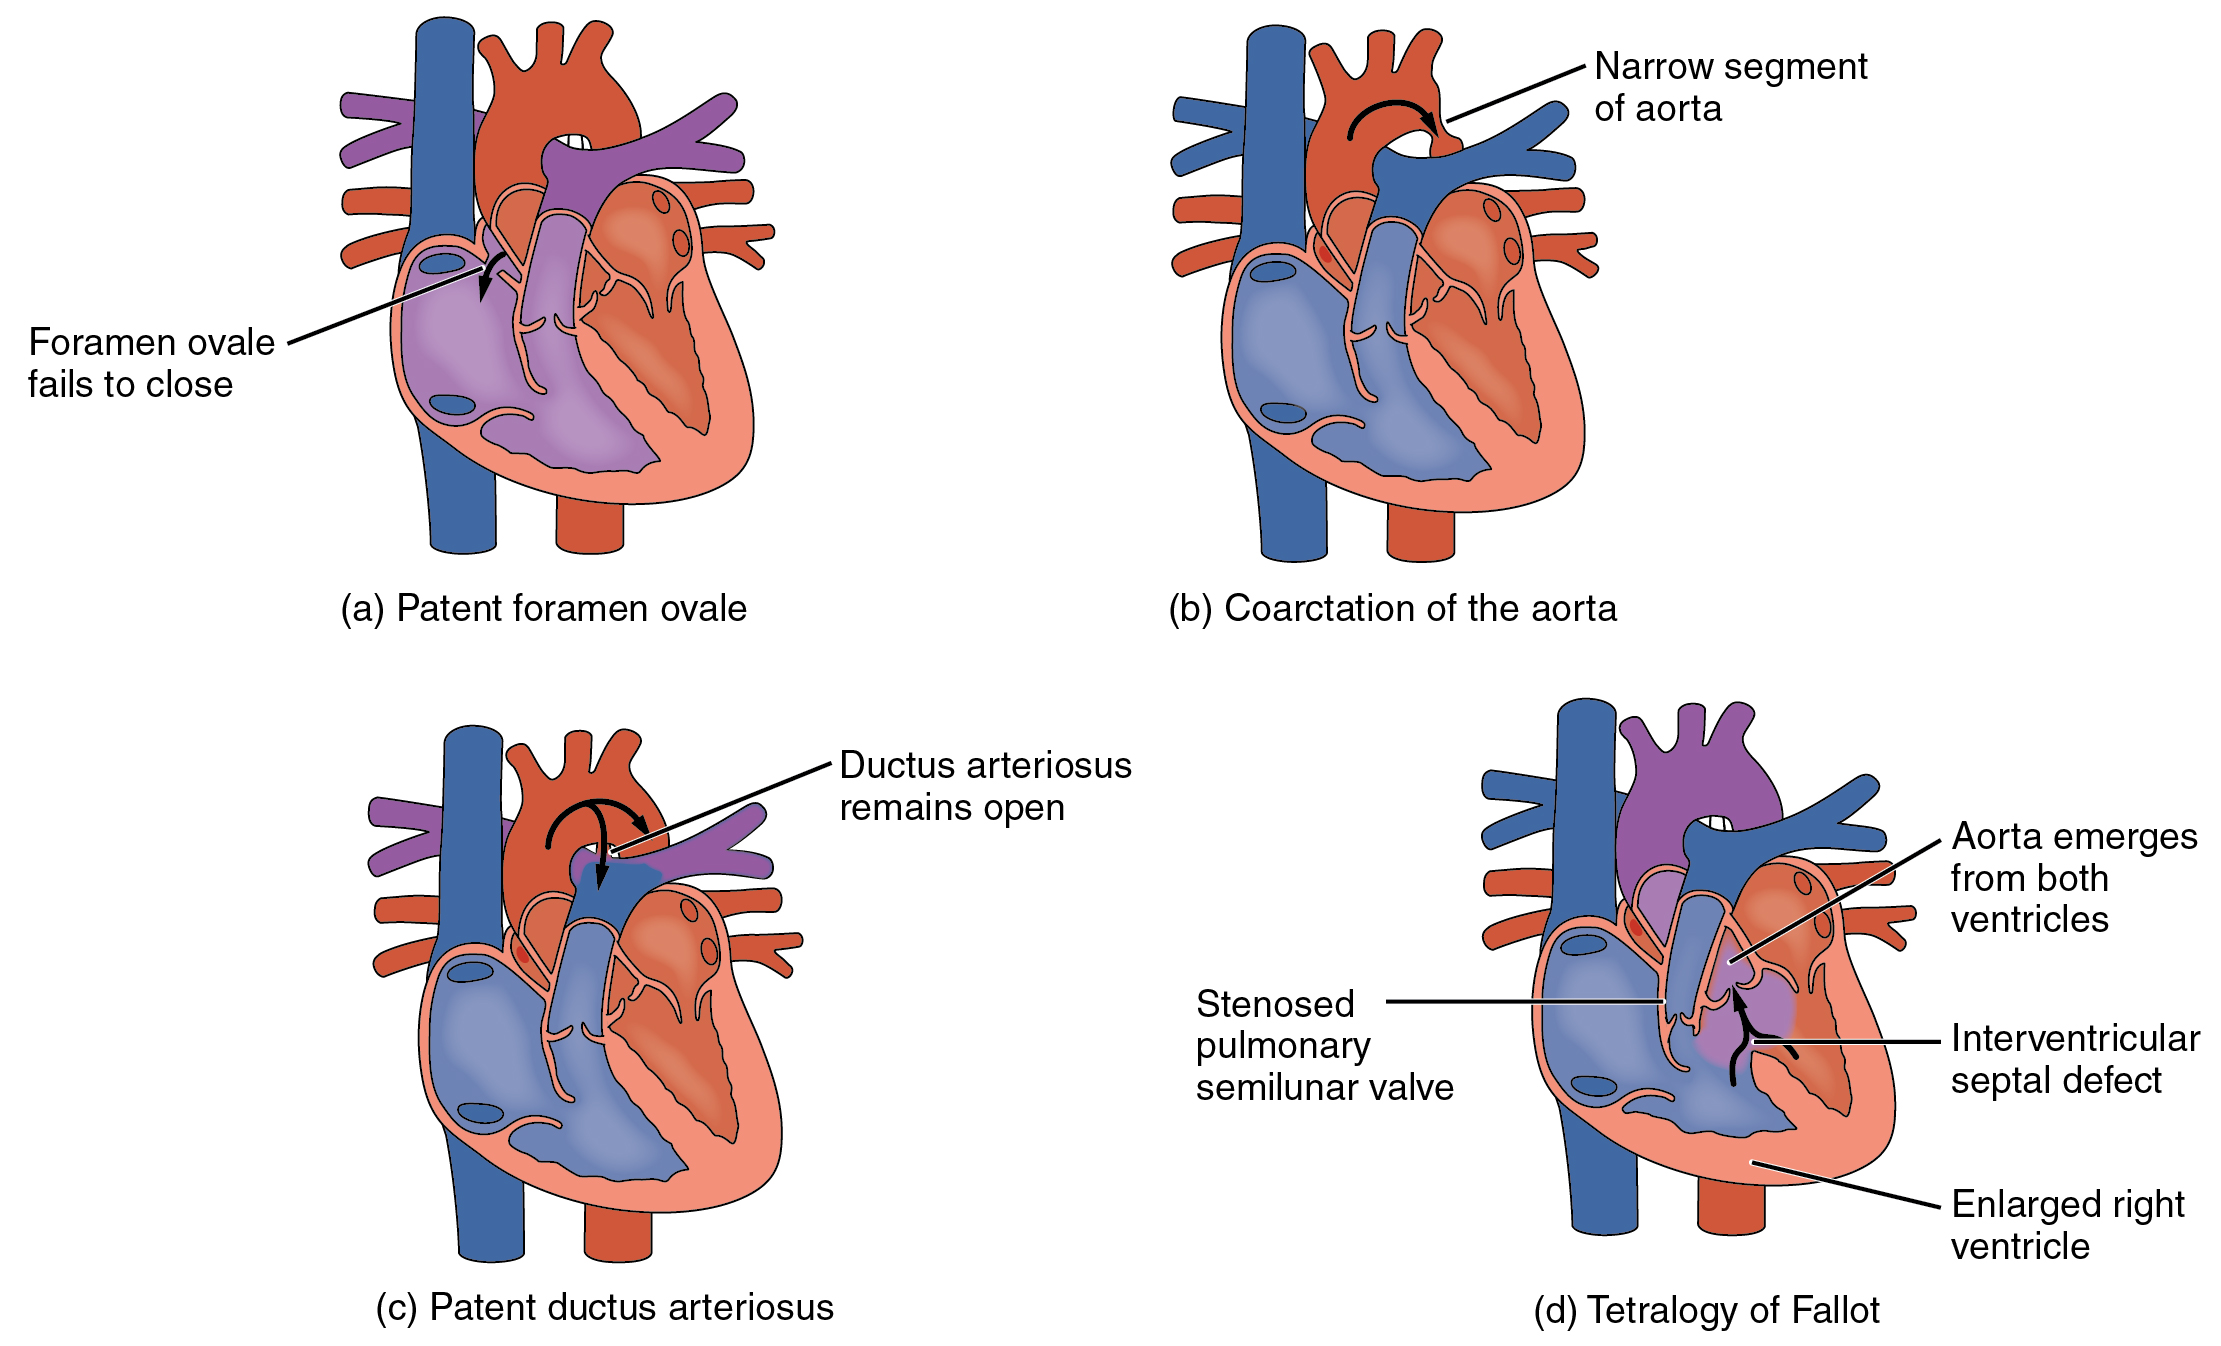 This diagram shows the structure of the heart with different congenital defects. The top left panel shows patent foramen ovale, the top right panel shows coarctation of the aorta, the bottom left panel shows patent ductus ateriosus and the bottom right shows tetralogy of fallot.